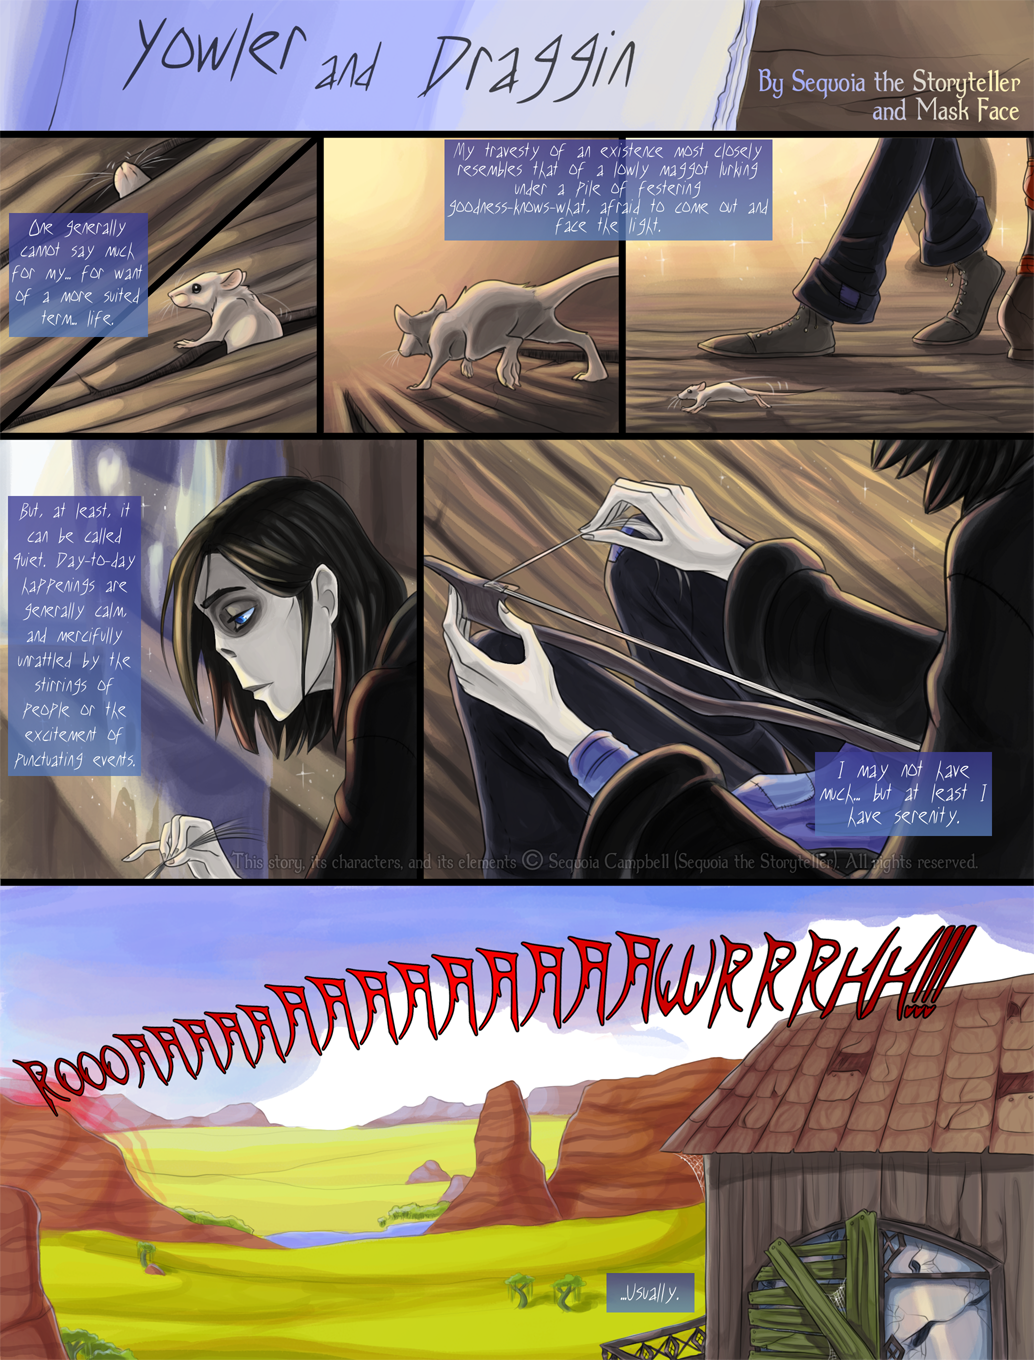 Yowler and Draggin, page 1